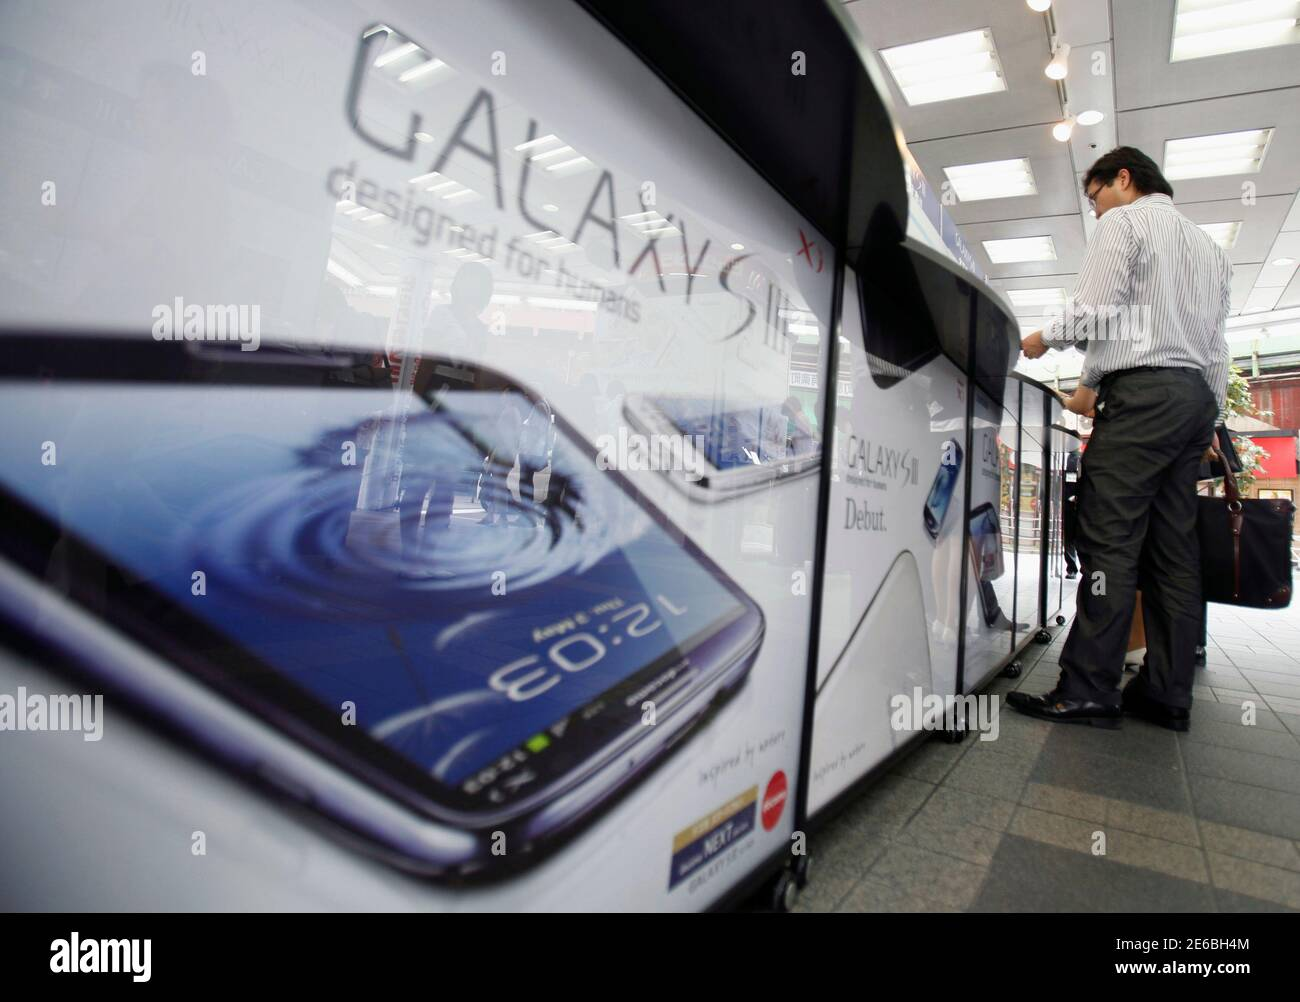 A customer tries out a Samsung Galaxy S III smartphone, released by Japan's largest mobile carrier NTT Docomo Inc, at an electronics store in Tokyo June 28, 2012. The Galaxy S III has received the most positive reviews among any of the Samsung smartphones, and the technology giant says the phone is on track to become its fastest selling smartphone, with sales likely to top 10 million in the first two months since its launch.   REUTERS/Yuriko Nakao (JAPAN - Tags: SCIENCE TECHNOLOGY BUSINESS TELECOMS) Stock Photo